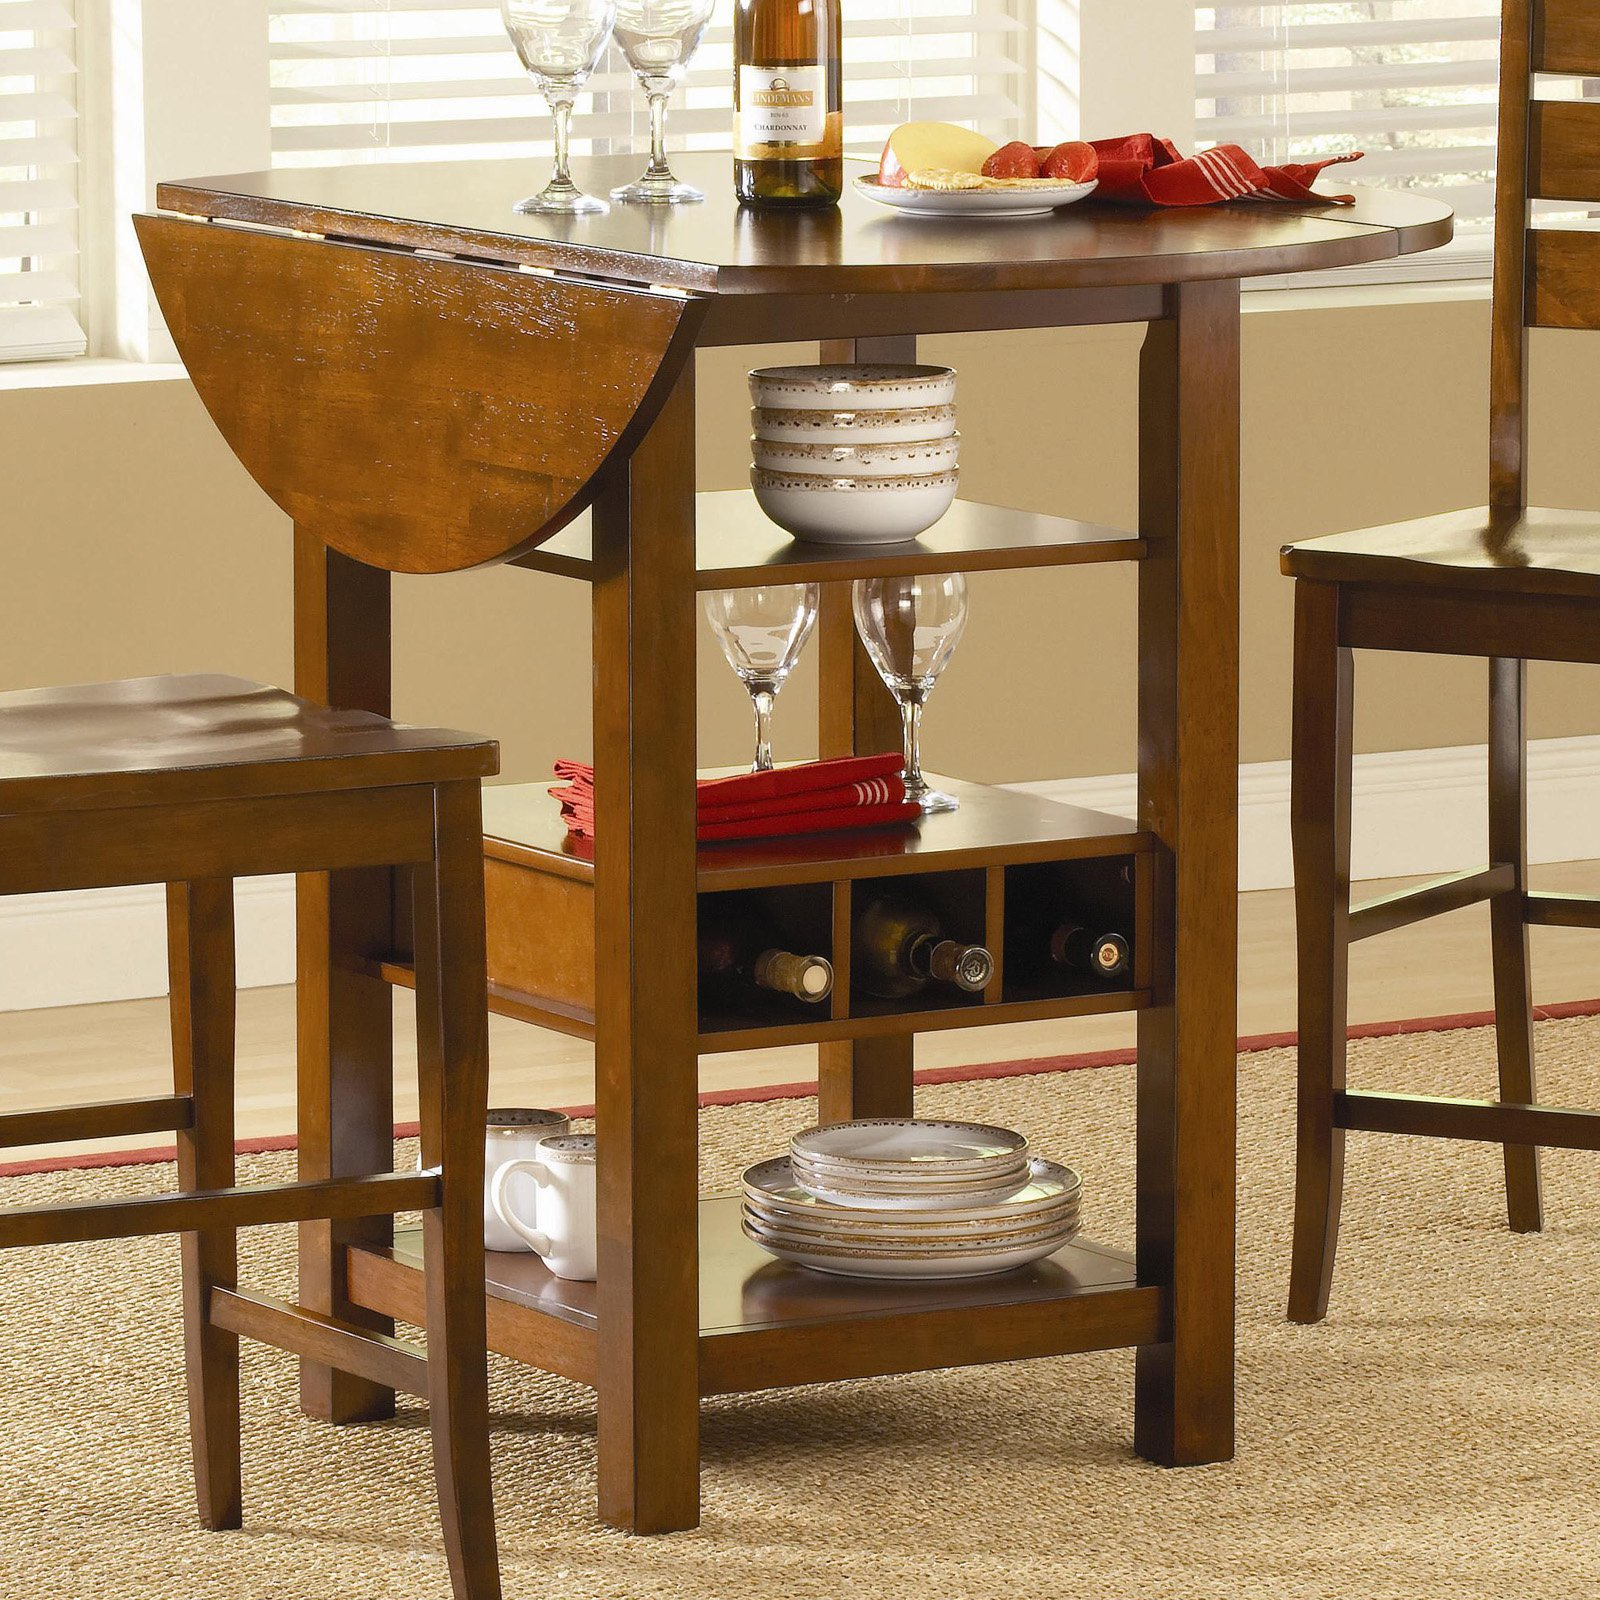 Ridgewood Counter Height Drop Leaf Dining Table with Storage - Mahogany